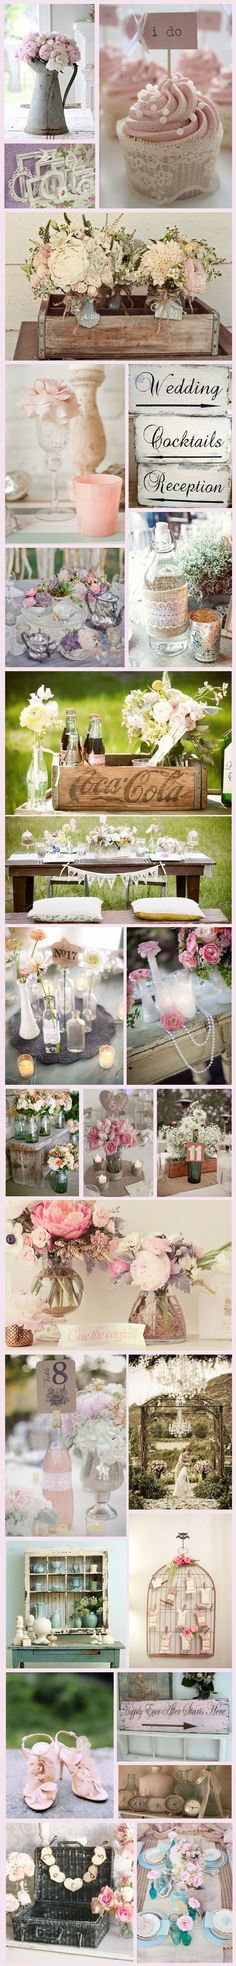 Vintage themed ideas. Love!